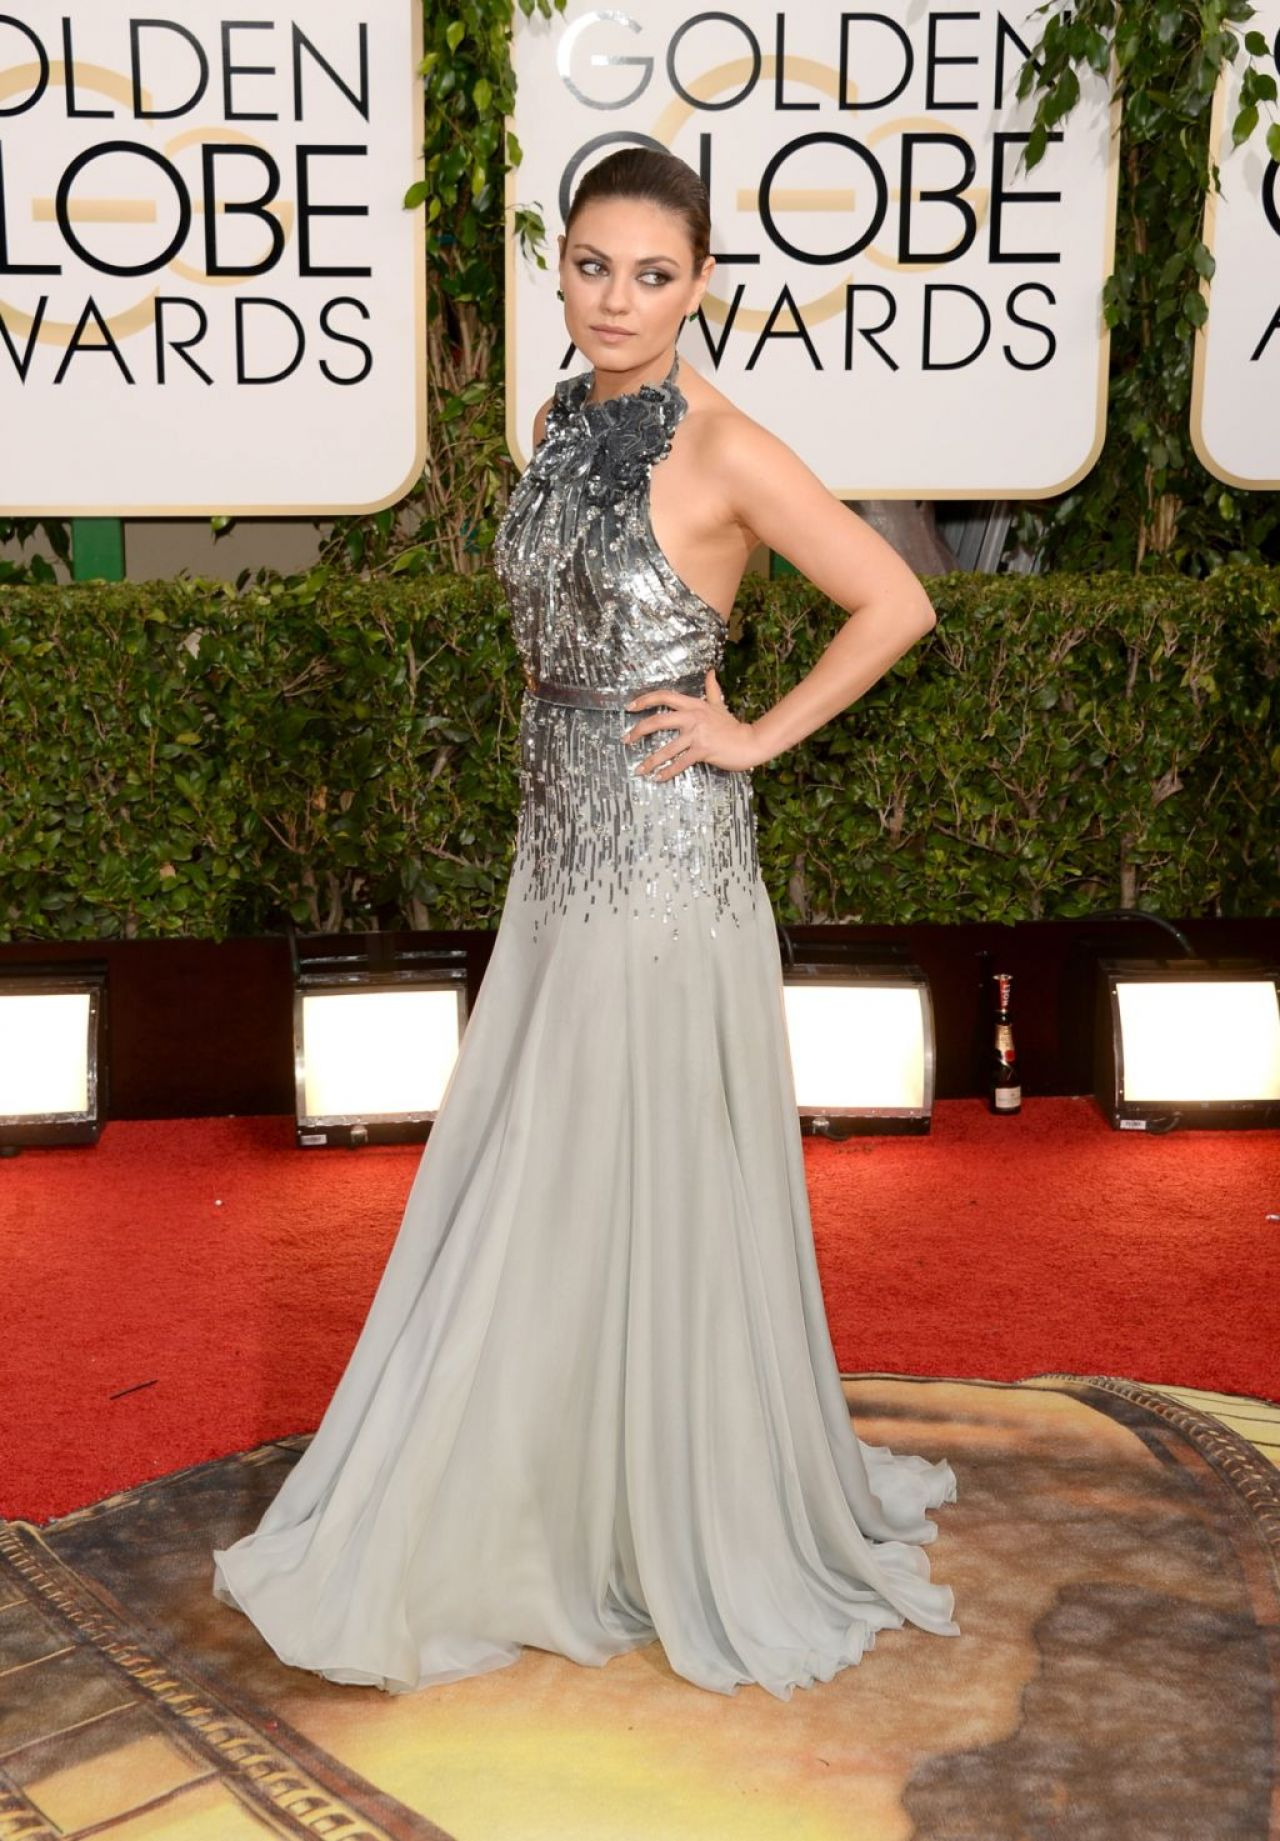 Mila Kunis - 2014 Golden Globe Awards Red Carpet